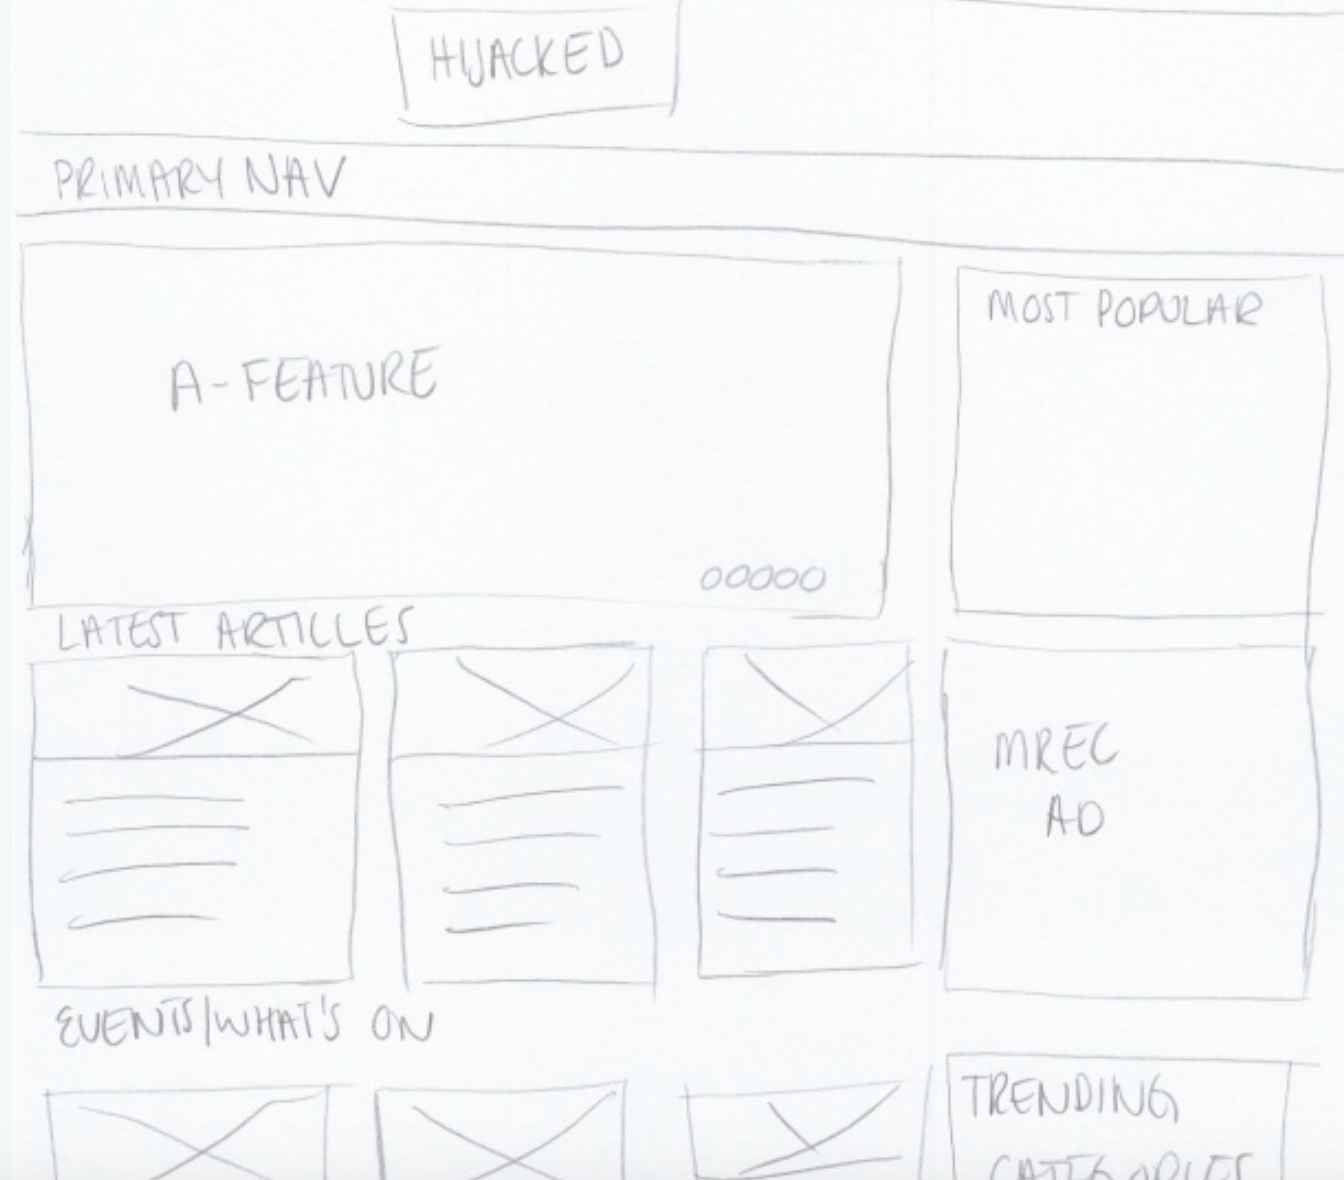 Initial wireframe sketches of the homepage.